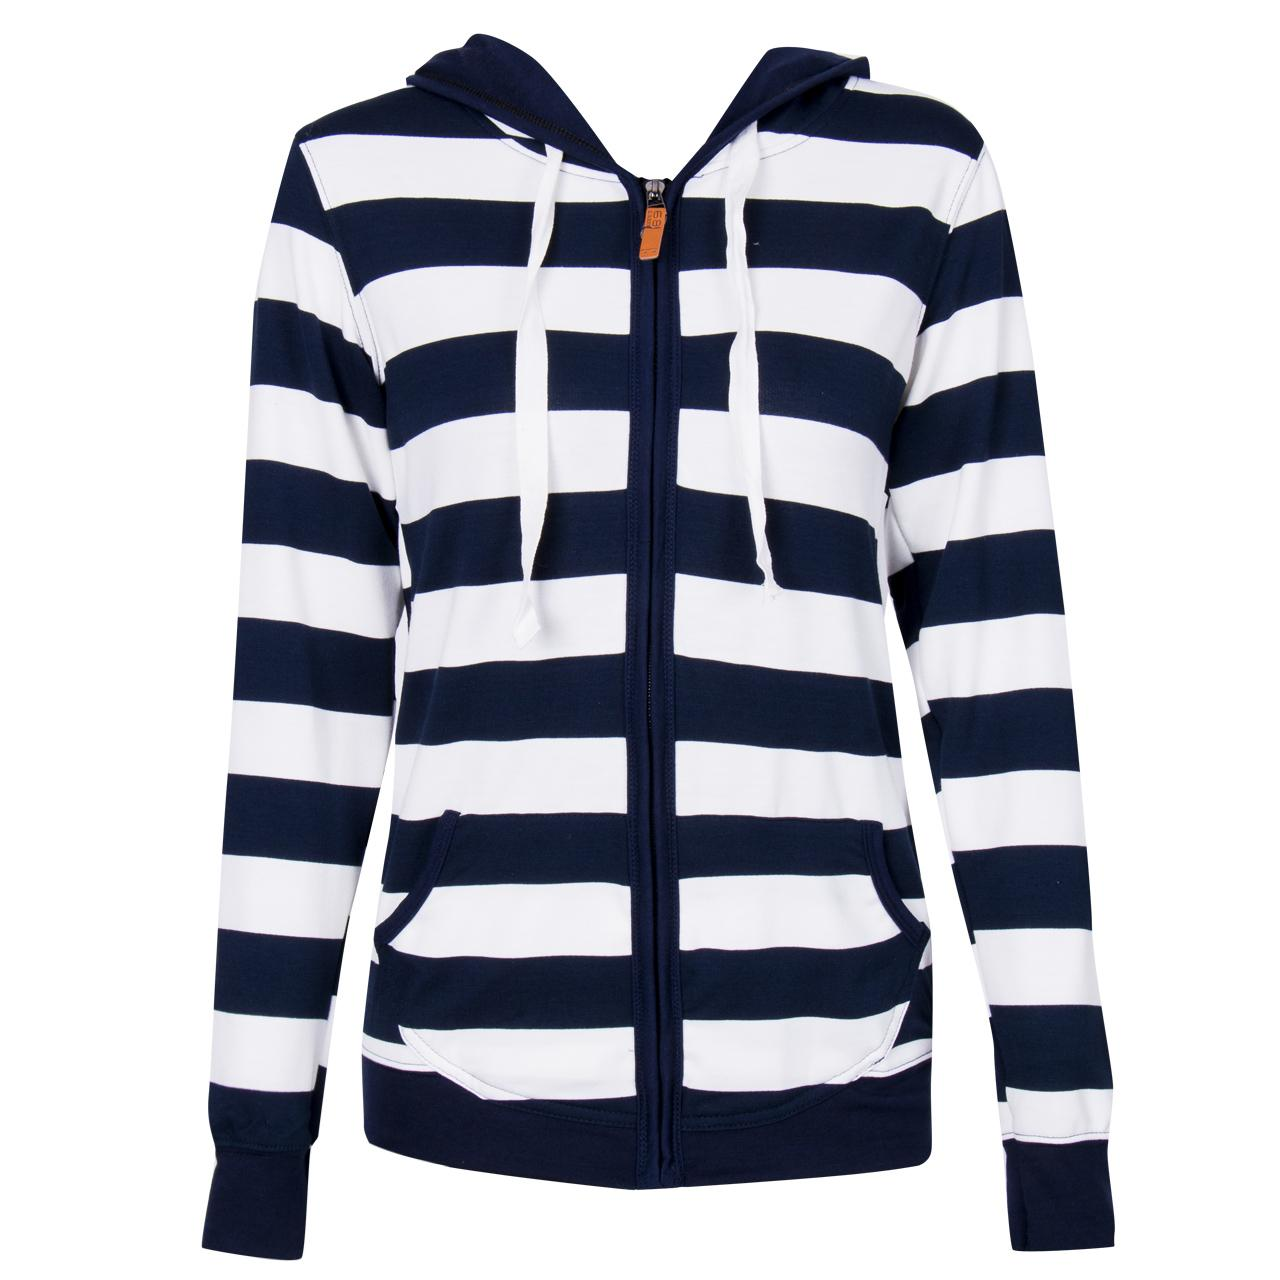 Women Oversize Coats Clothes Autumn Winter Striped Zipper Tops Hooded Coat Jackets For Women Casual Slim Coat Plus Size S-XL